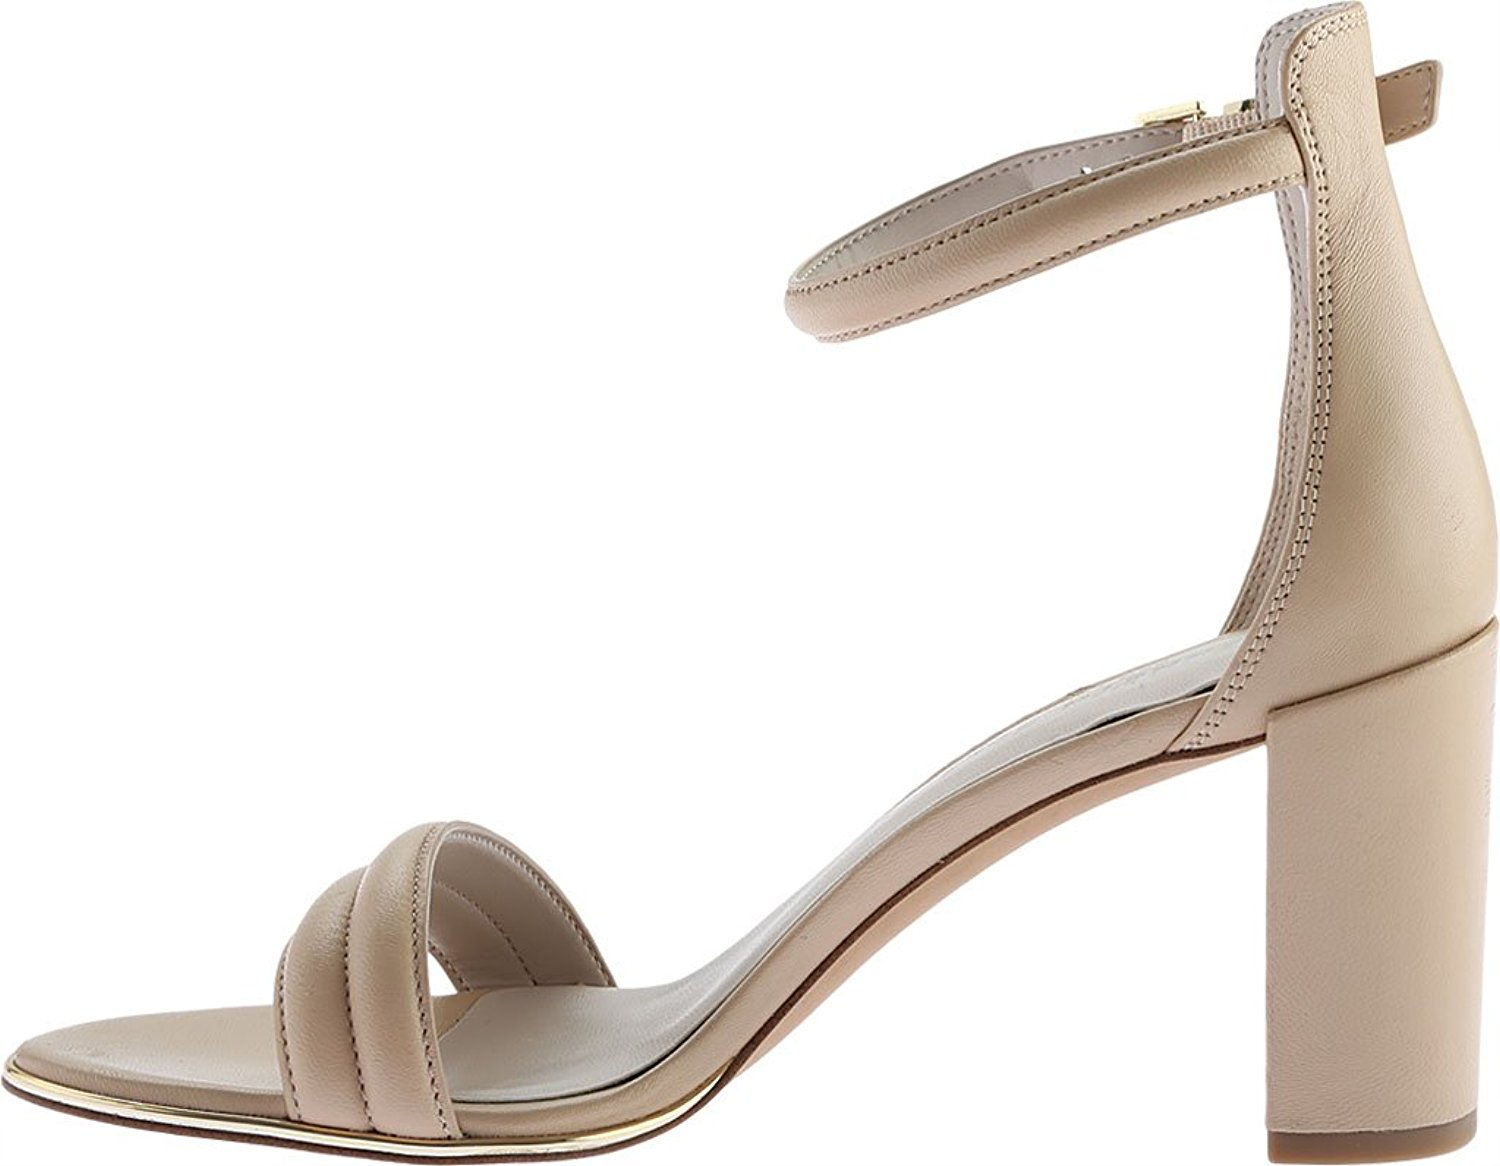 Kenneth Cole New York Heels Lex Damenschuhe Heels York & Pumps nude 11 US   9 UK ... f36d35